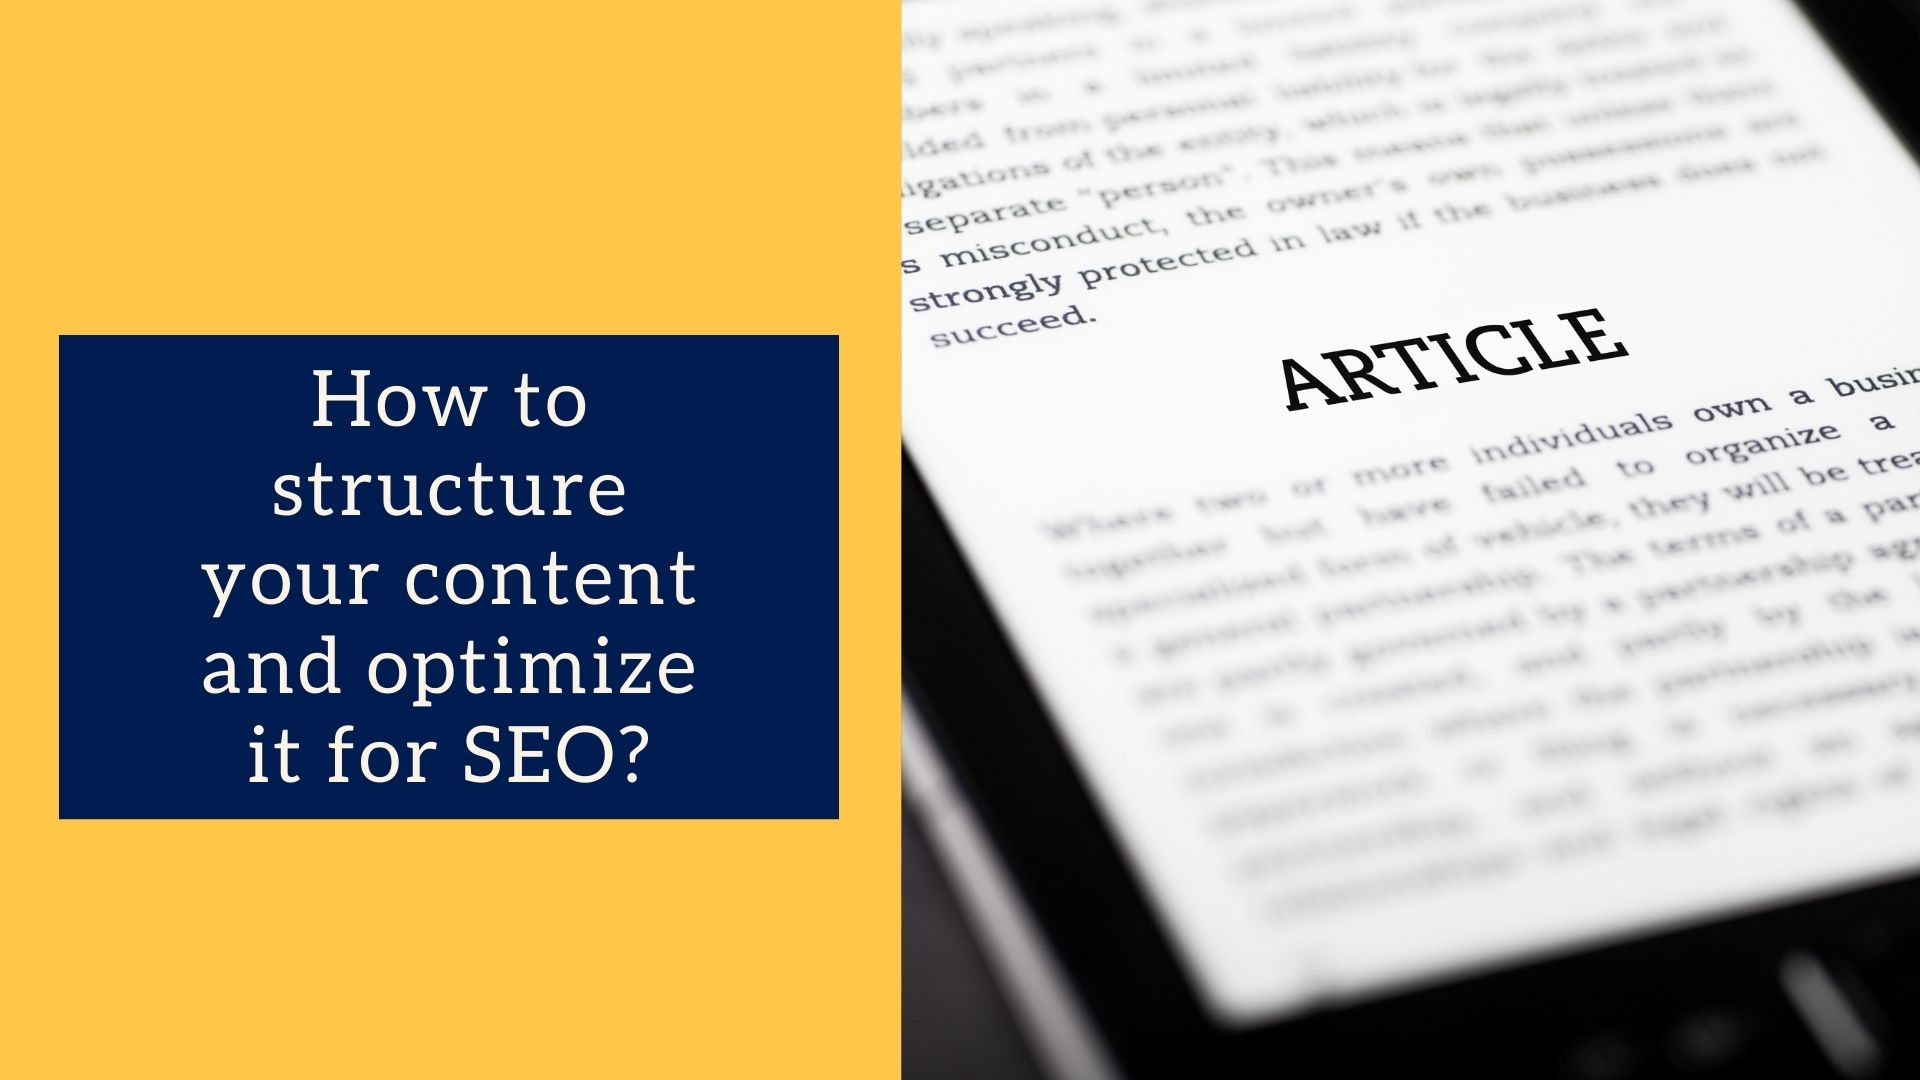 Structure and optimize your content